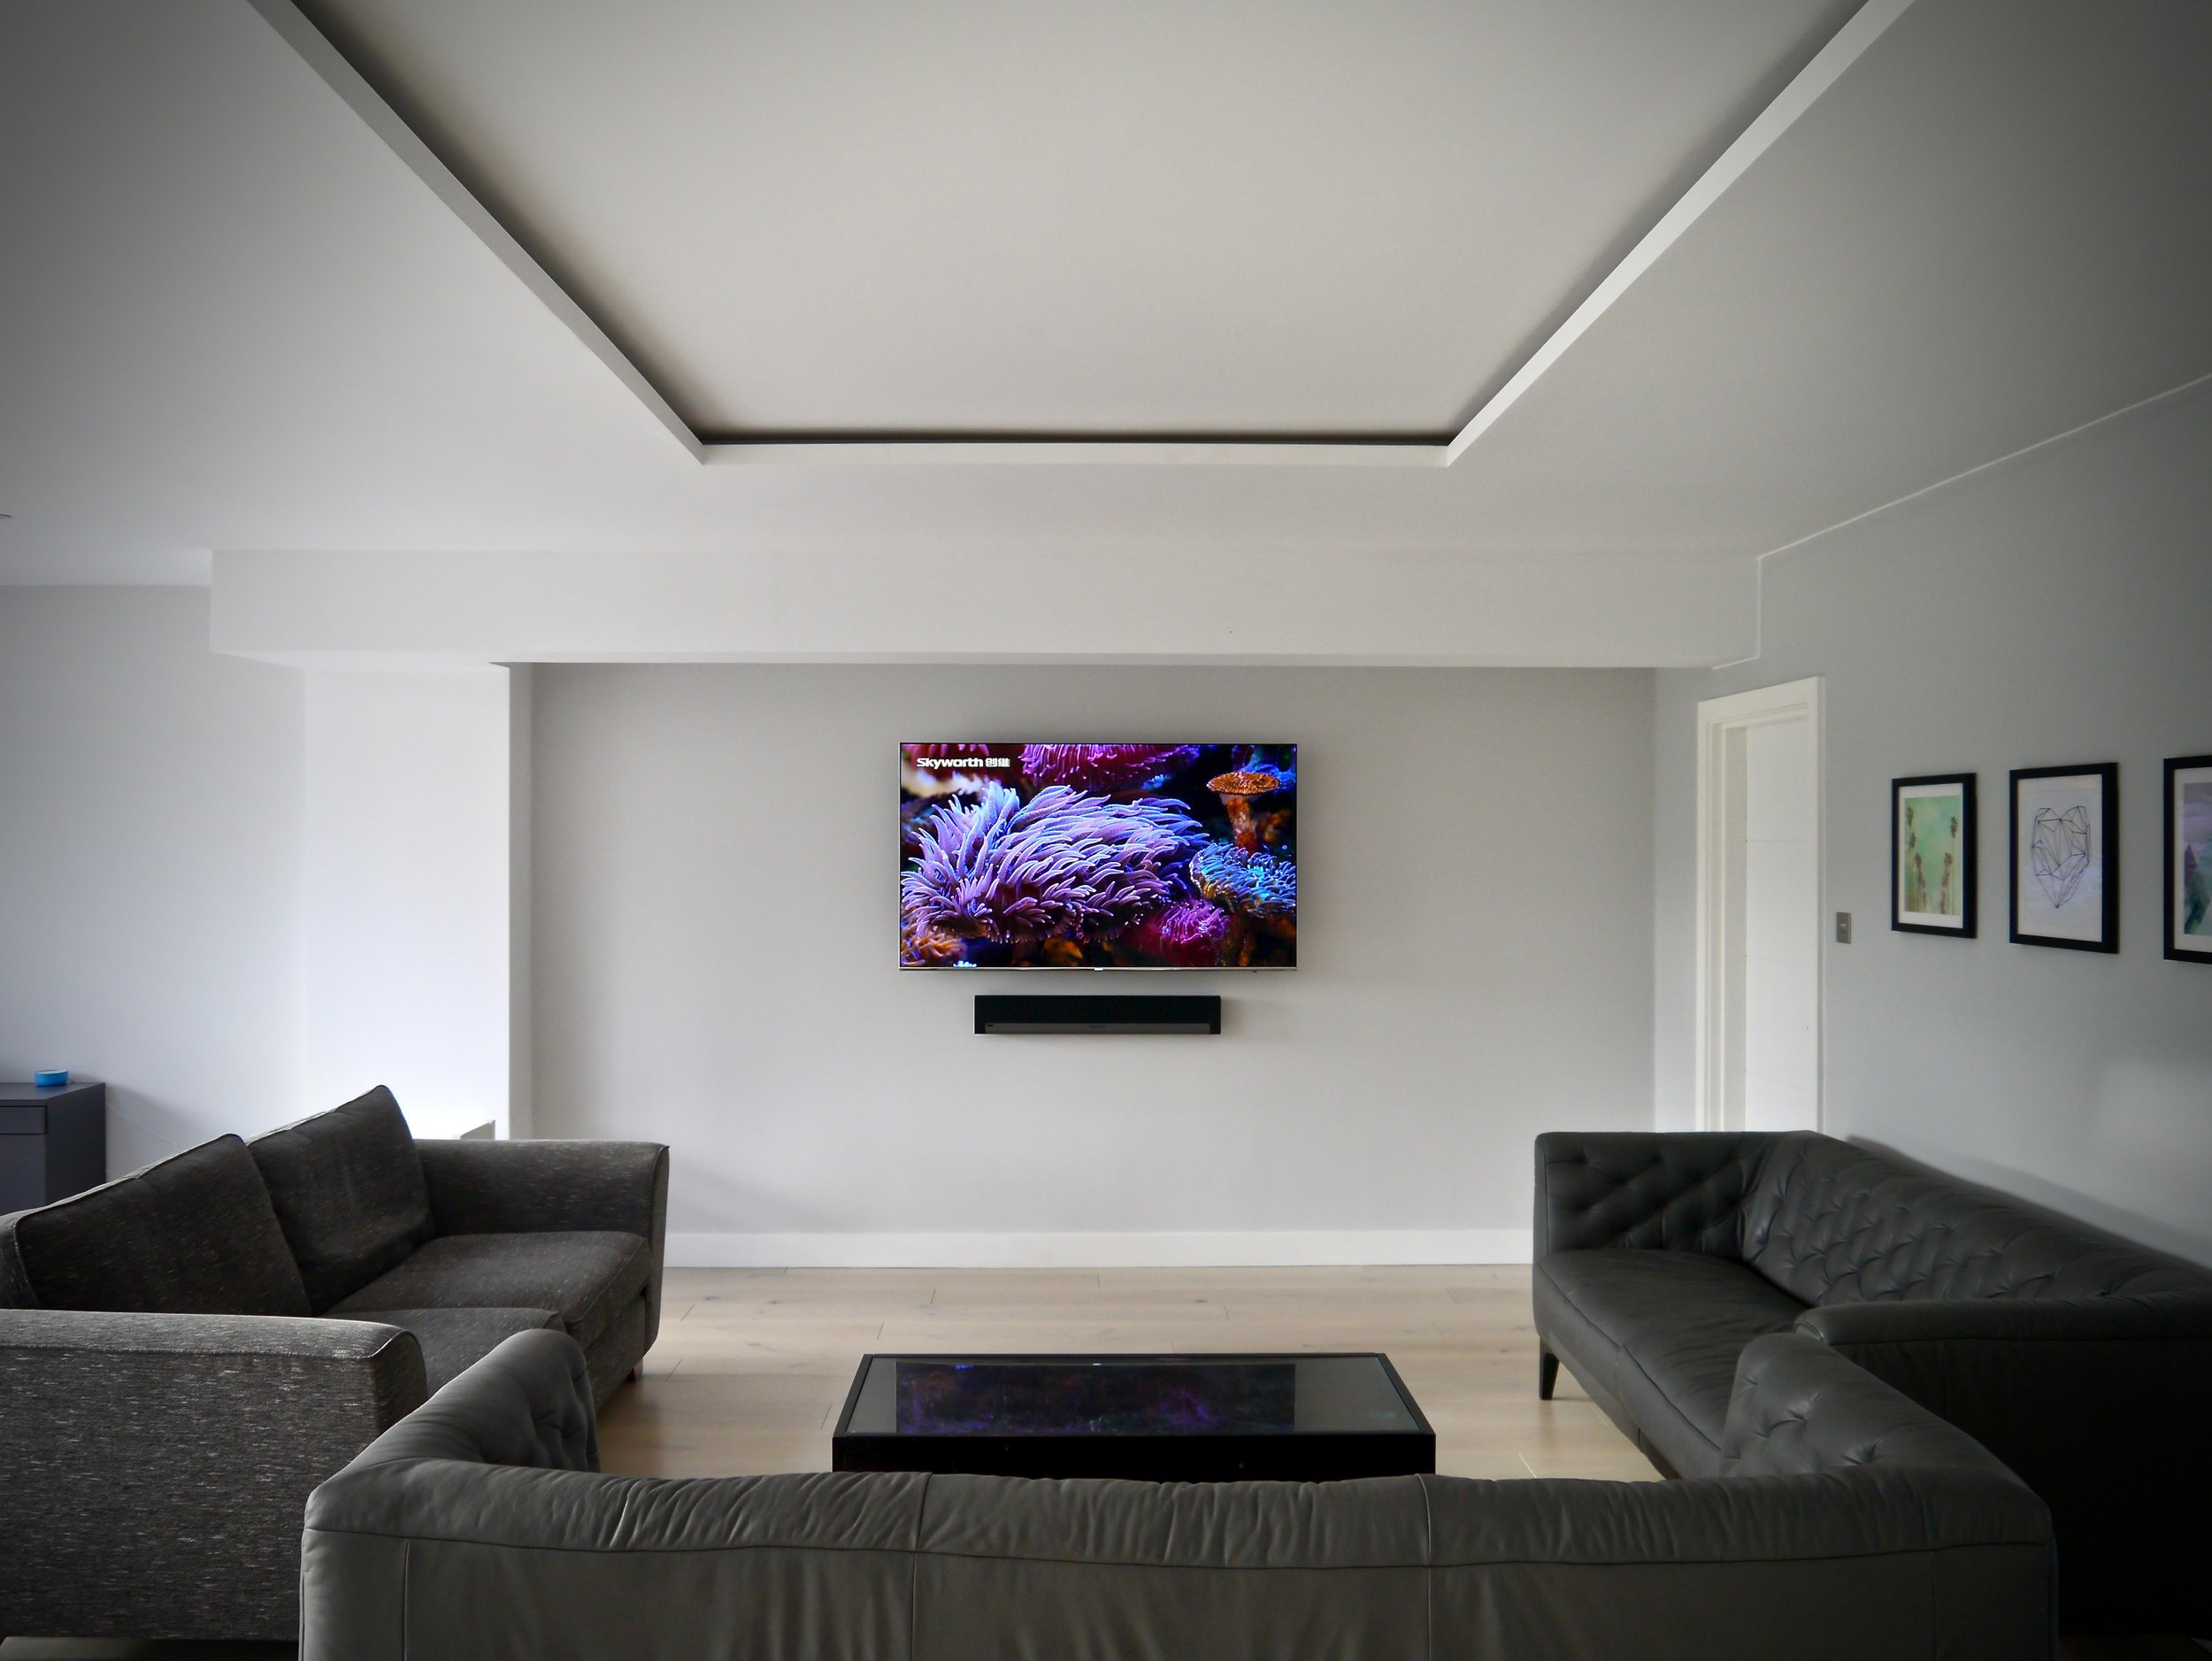 Esher Modern Open Plan Living Room Samsung Wall Mounted TV with Sonos Playbar LUXE SMART HOMES